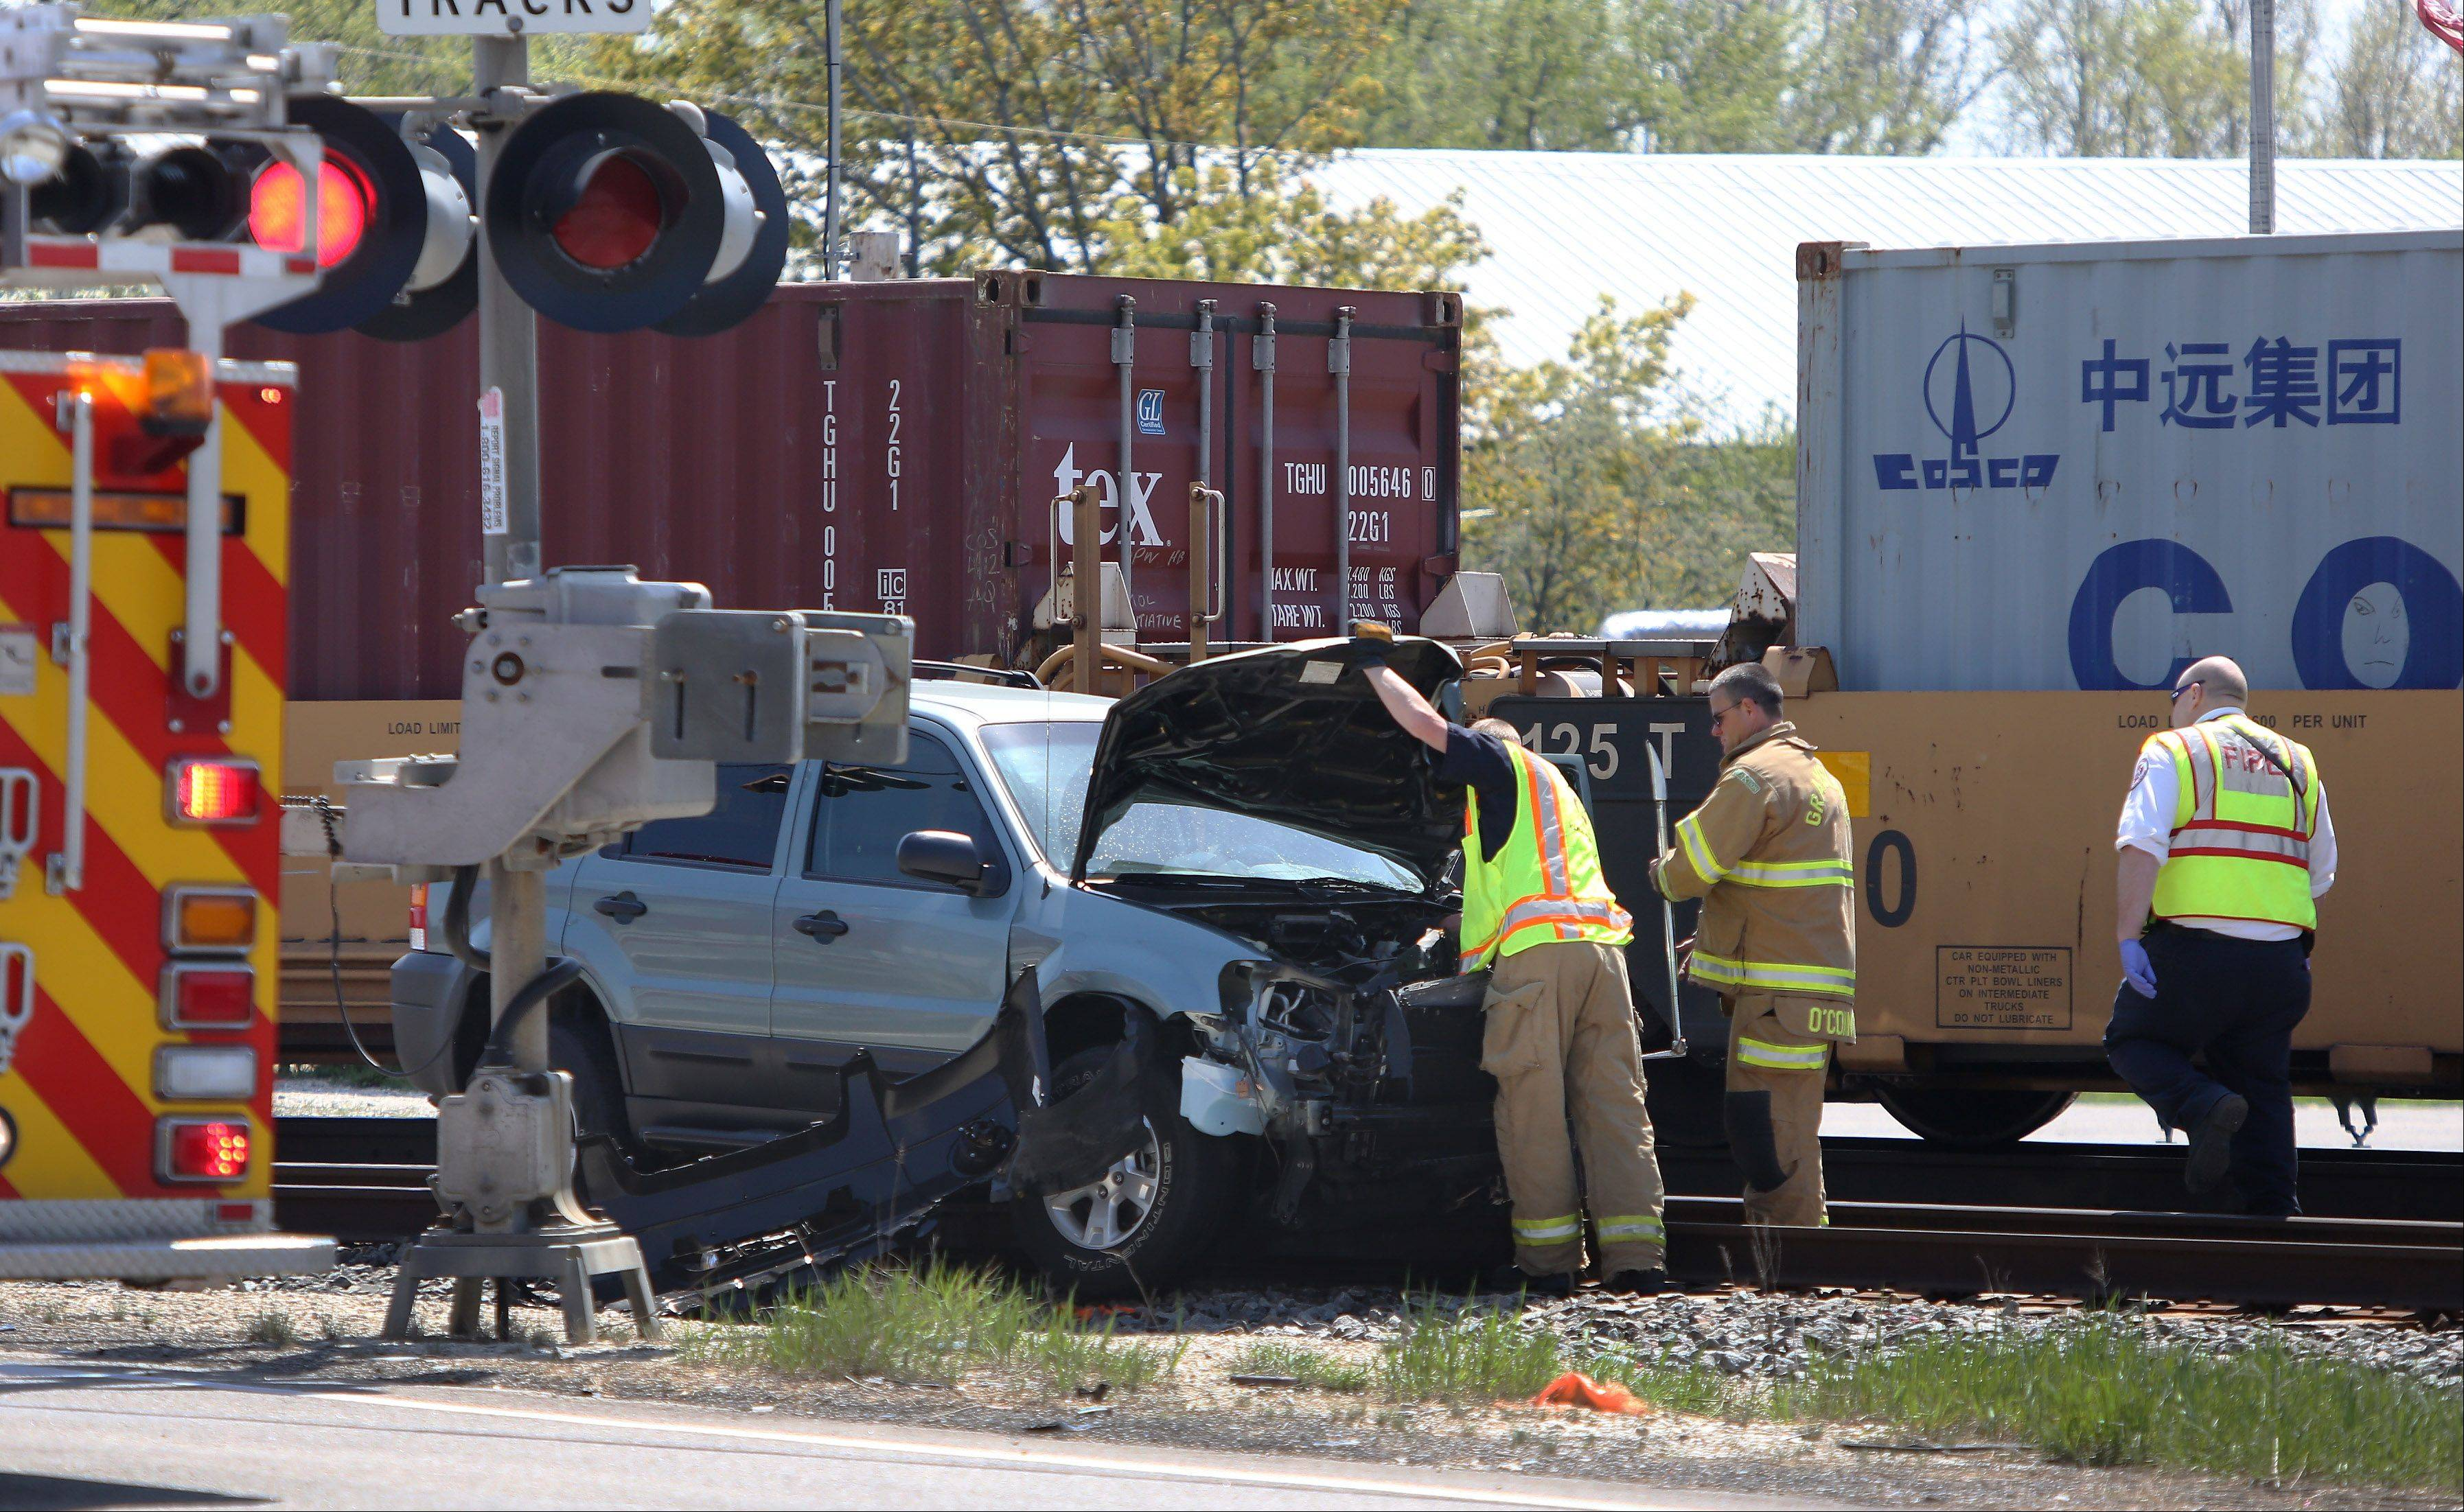 Emergency crews on the scene of a crash involving a train and an SUV at routes 137 and 83 in Grayslake on Wednesday. The driver of the vehicle was taken by ambulance to Advocate Condell Medical Center.